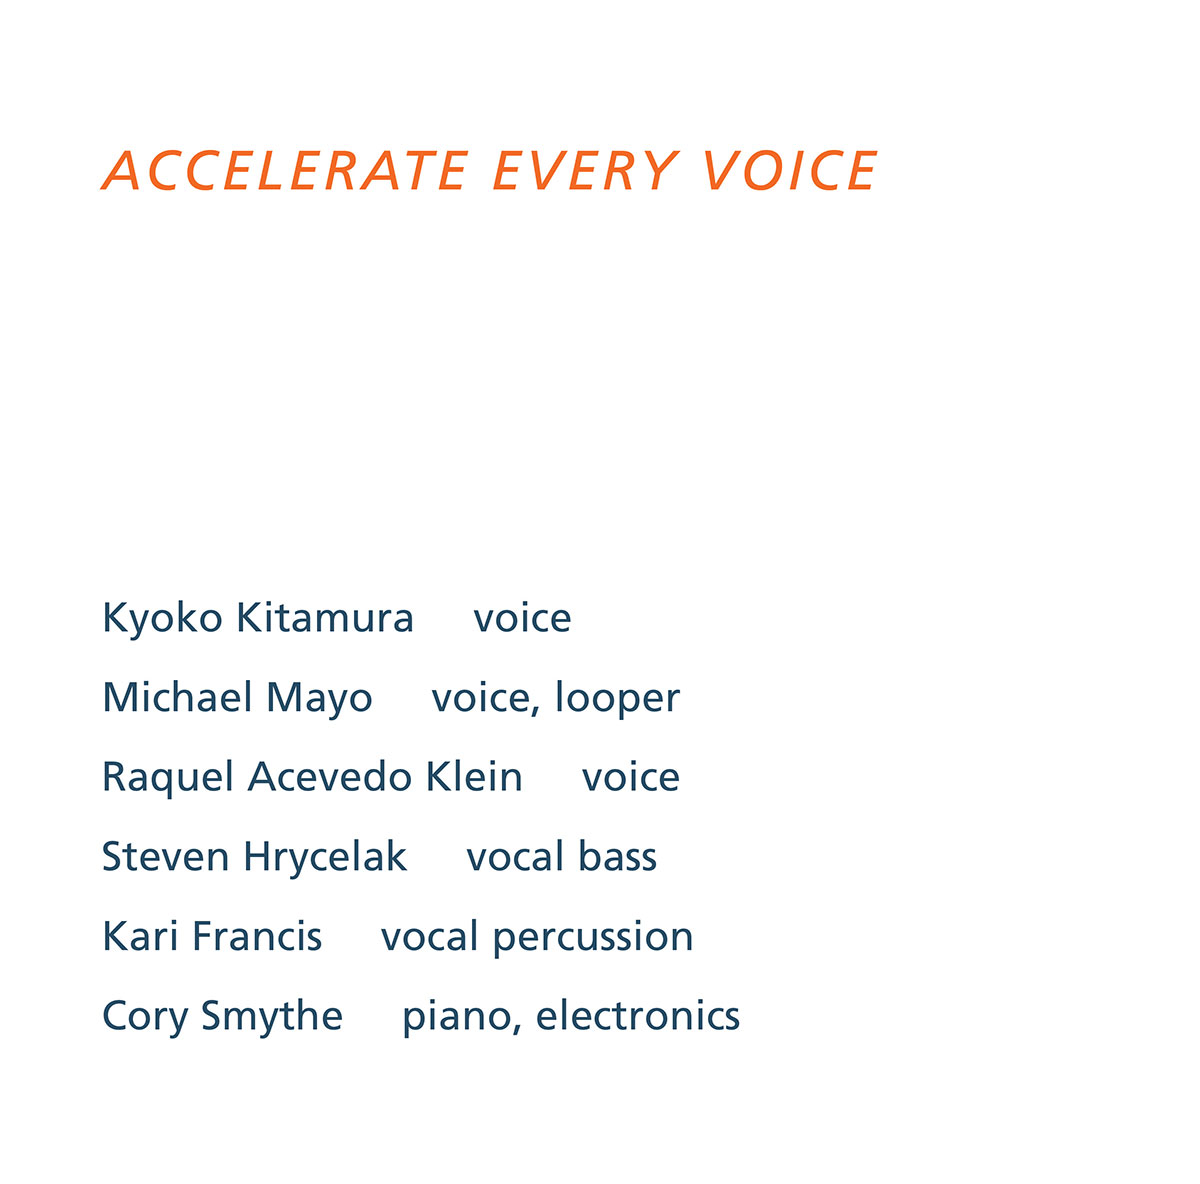 ACCELERATE EVERY VOICE